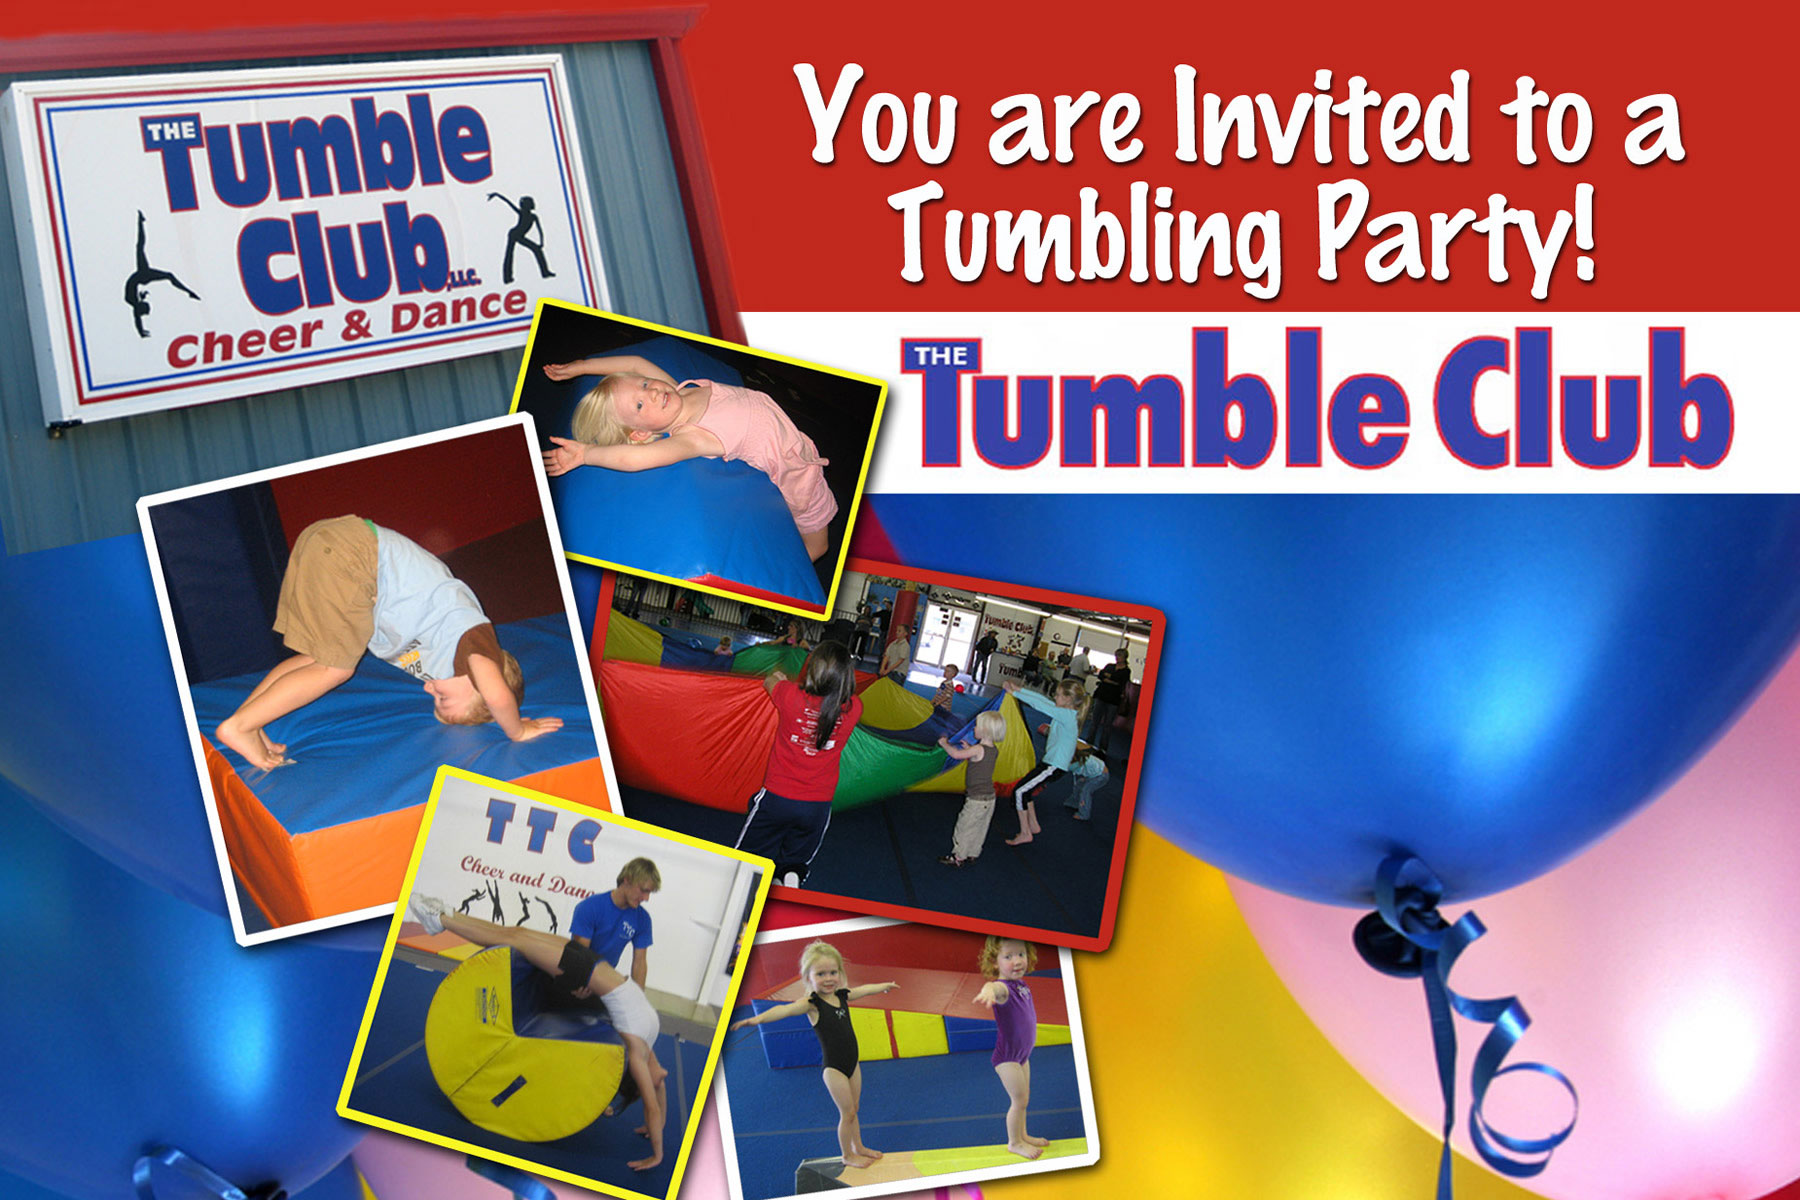 The Tumble Club Birthday Party